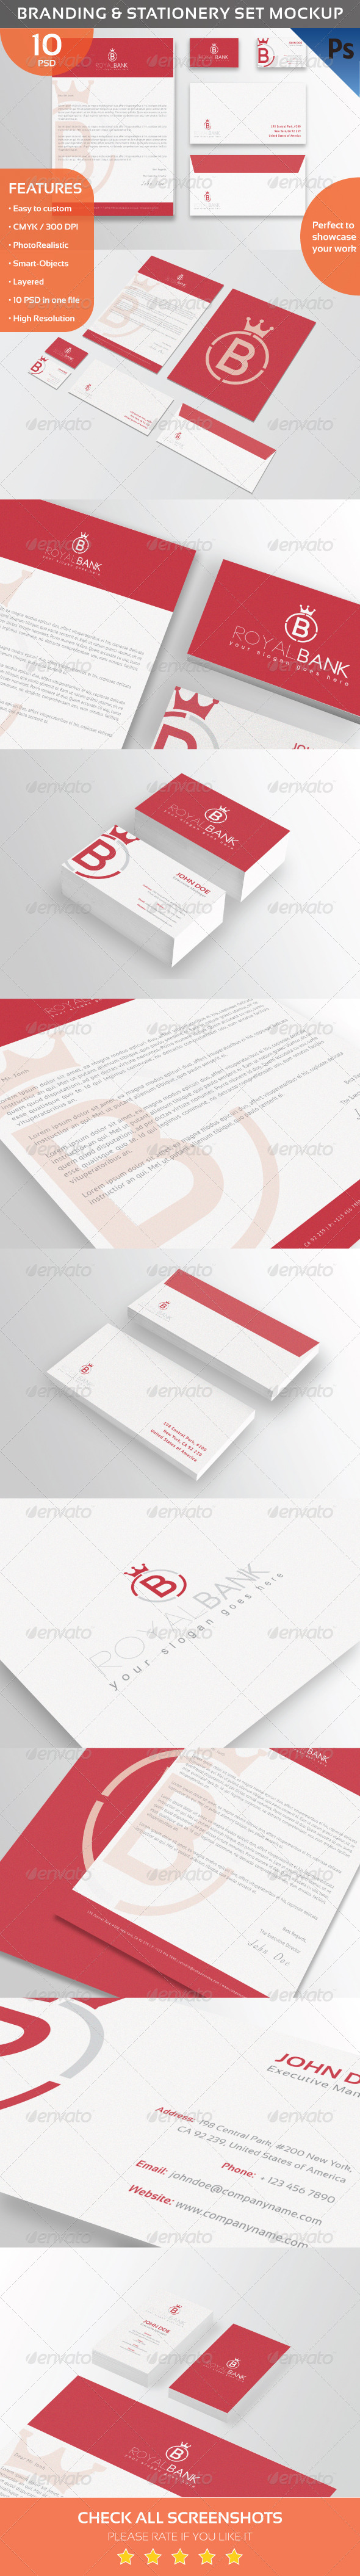 GraphicRiver Branding & Stationery Set Mockup 8526196